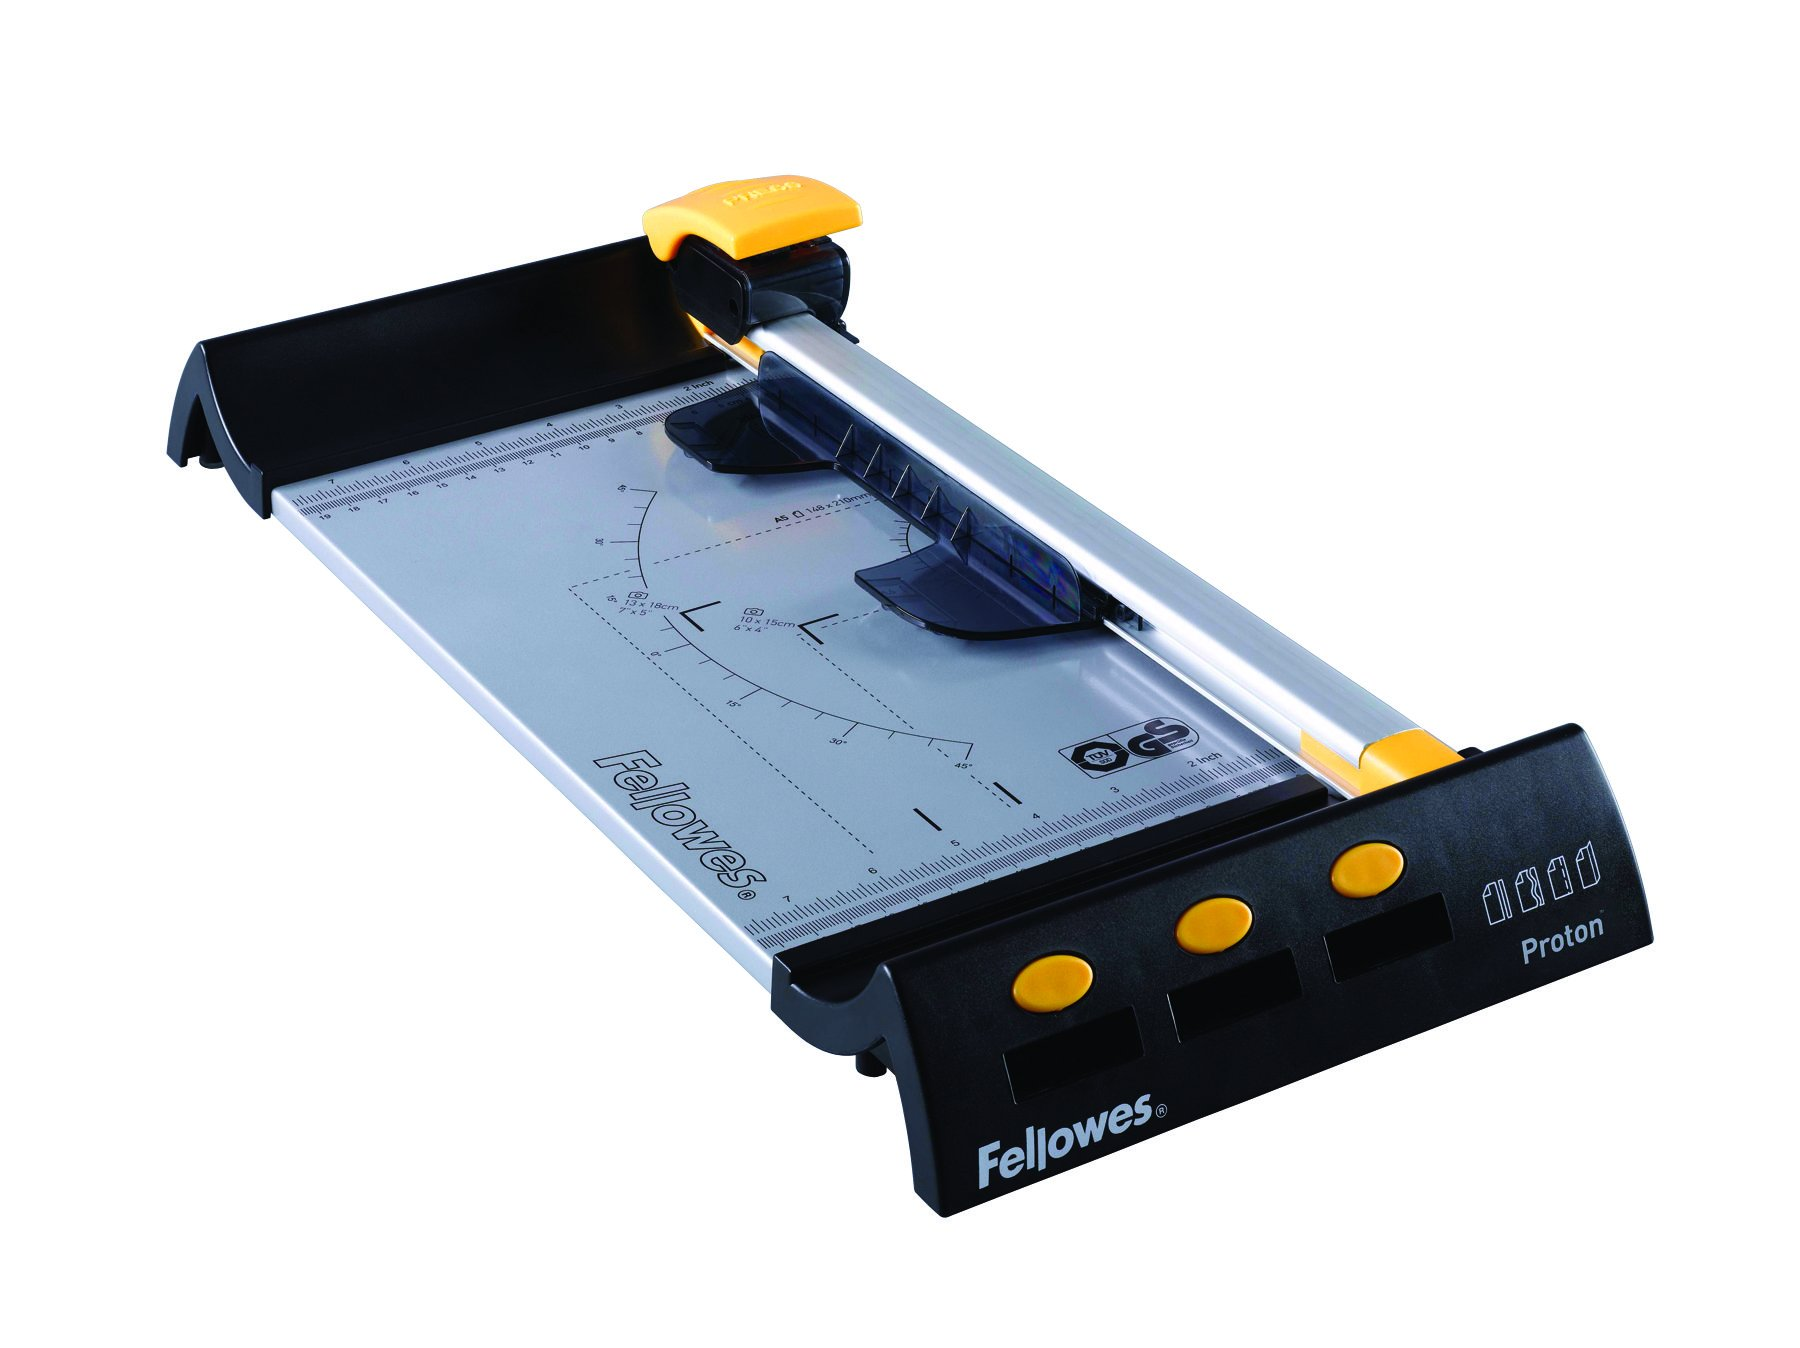 Fellowes Proton 5410201 Trimmer - 1 x Blade(s) - Cuts 10Sheet - 380 mm Cutting Length - Metal Base by Fellowes